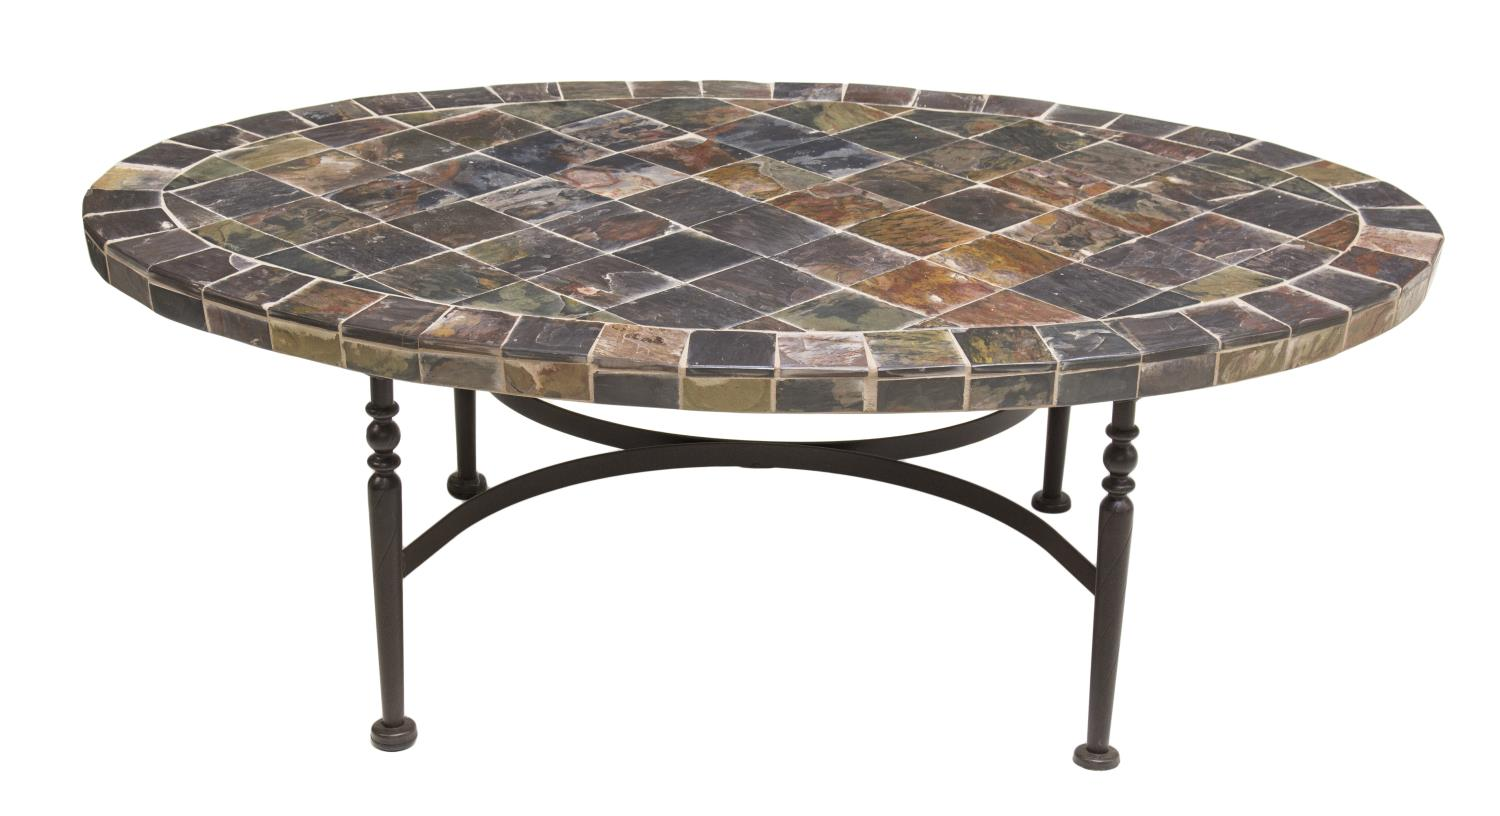 Oval variegated stone tile top iron coffee table day for Stone and iron coffee table